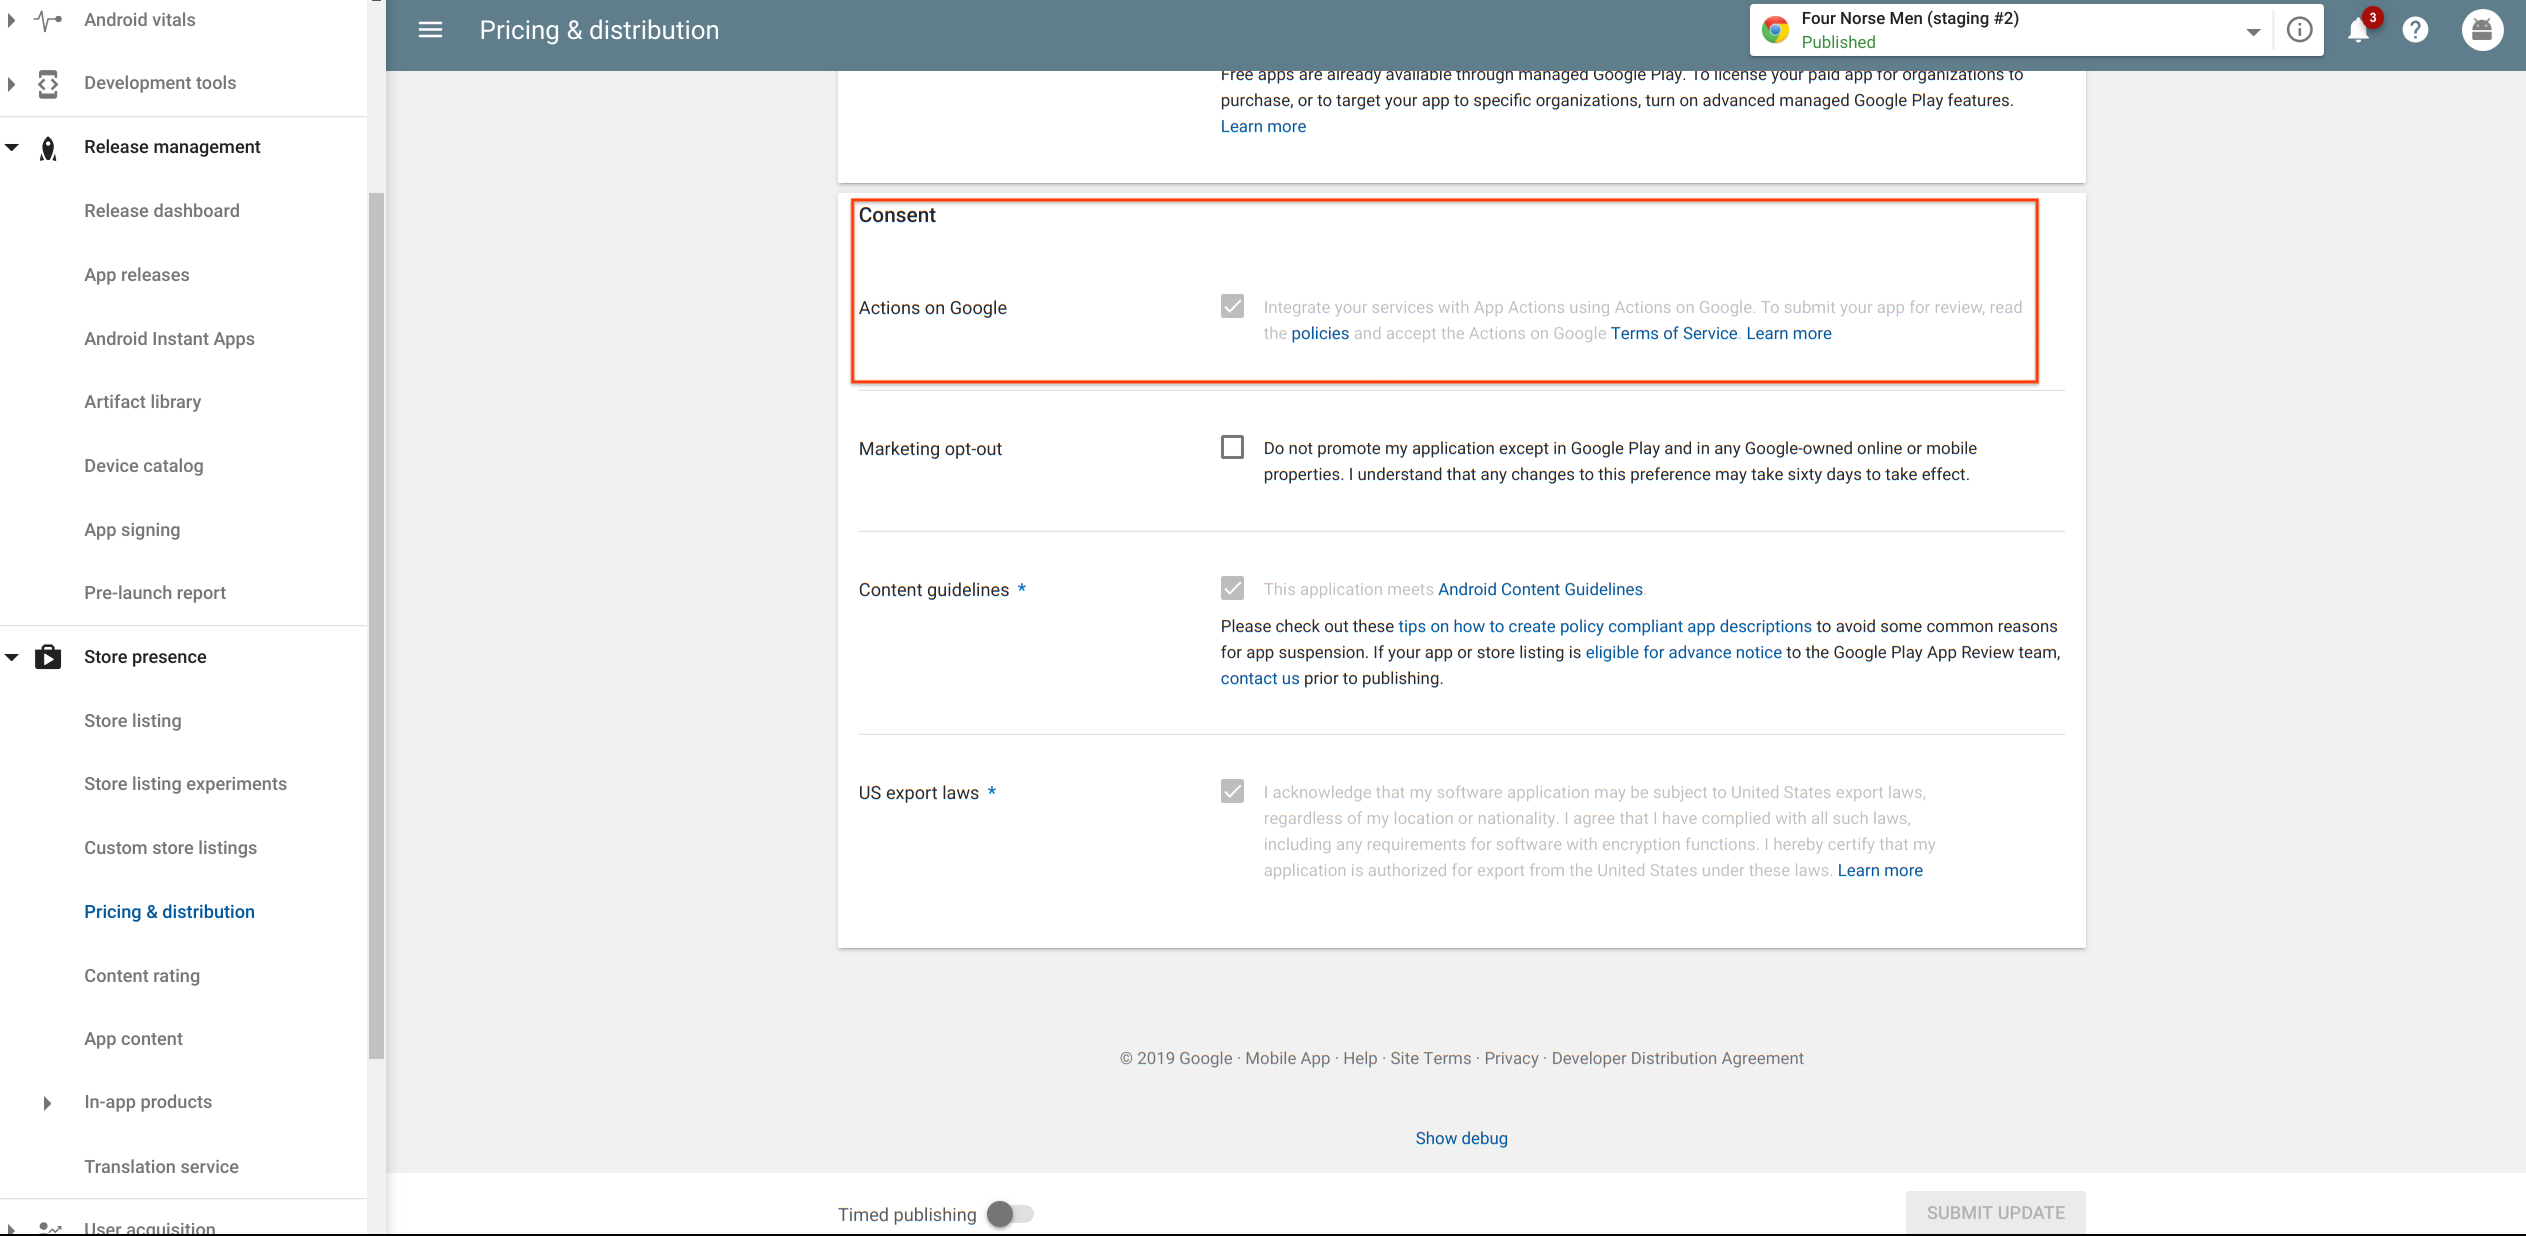 Actions on Google Terms of Service in the Google Play console.